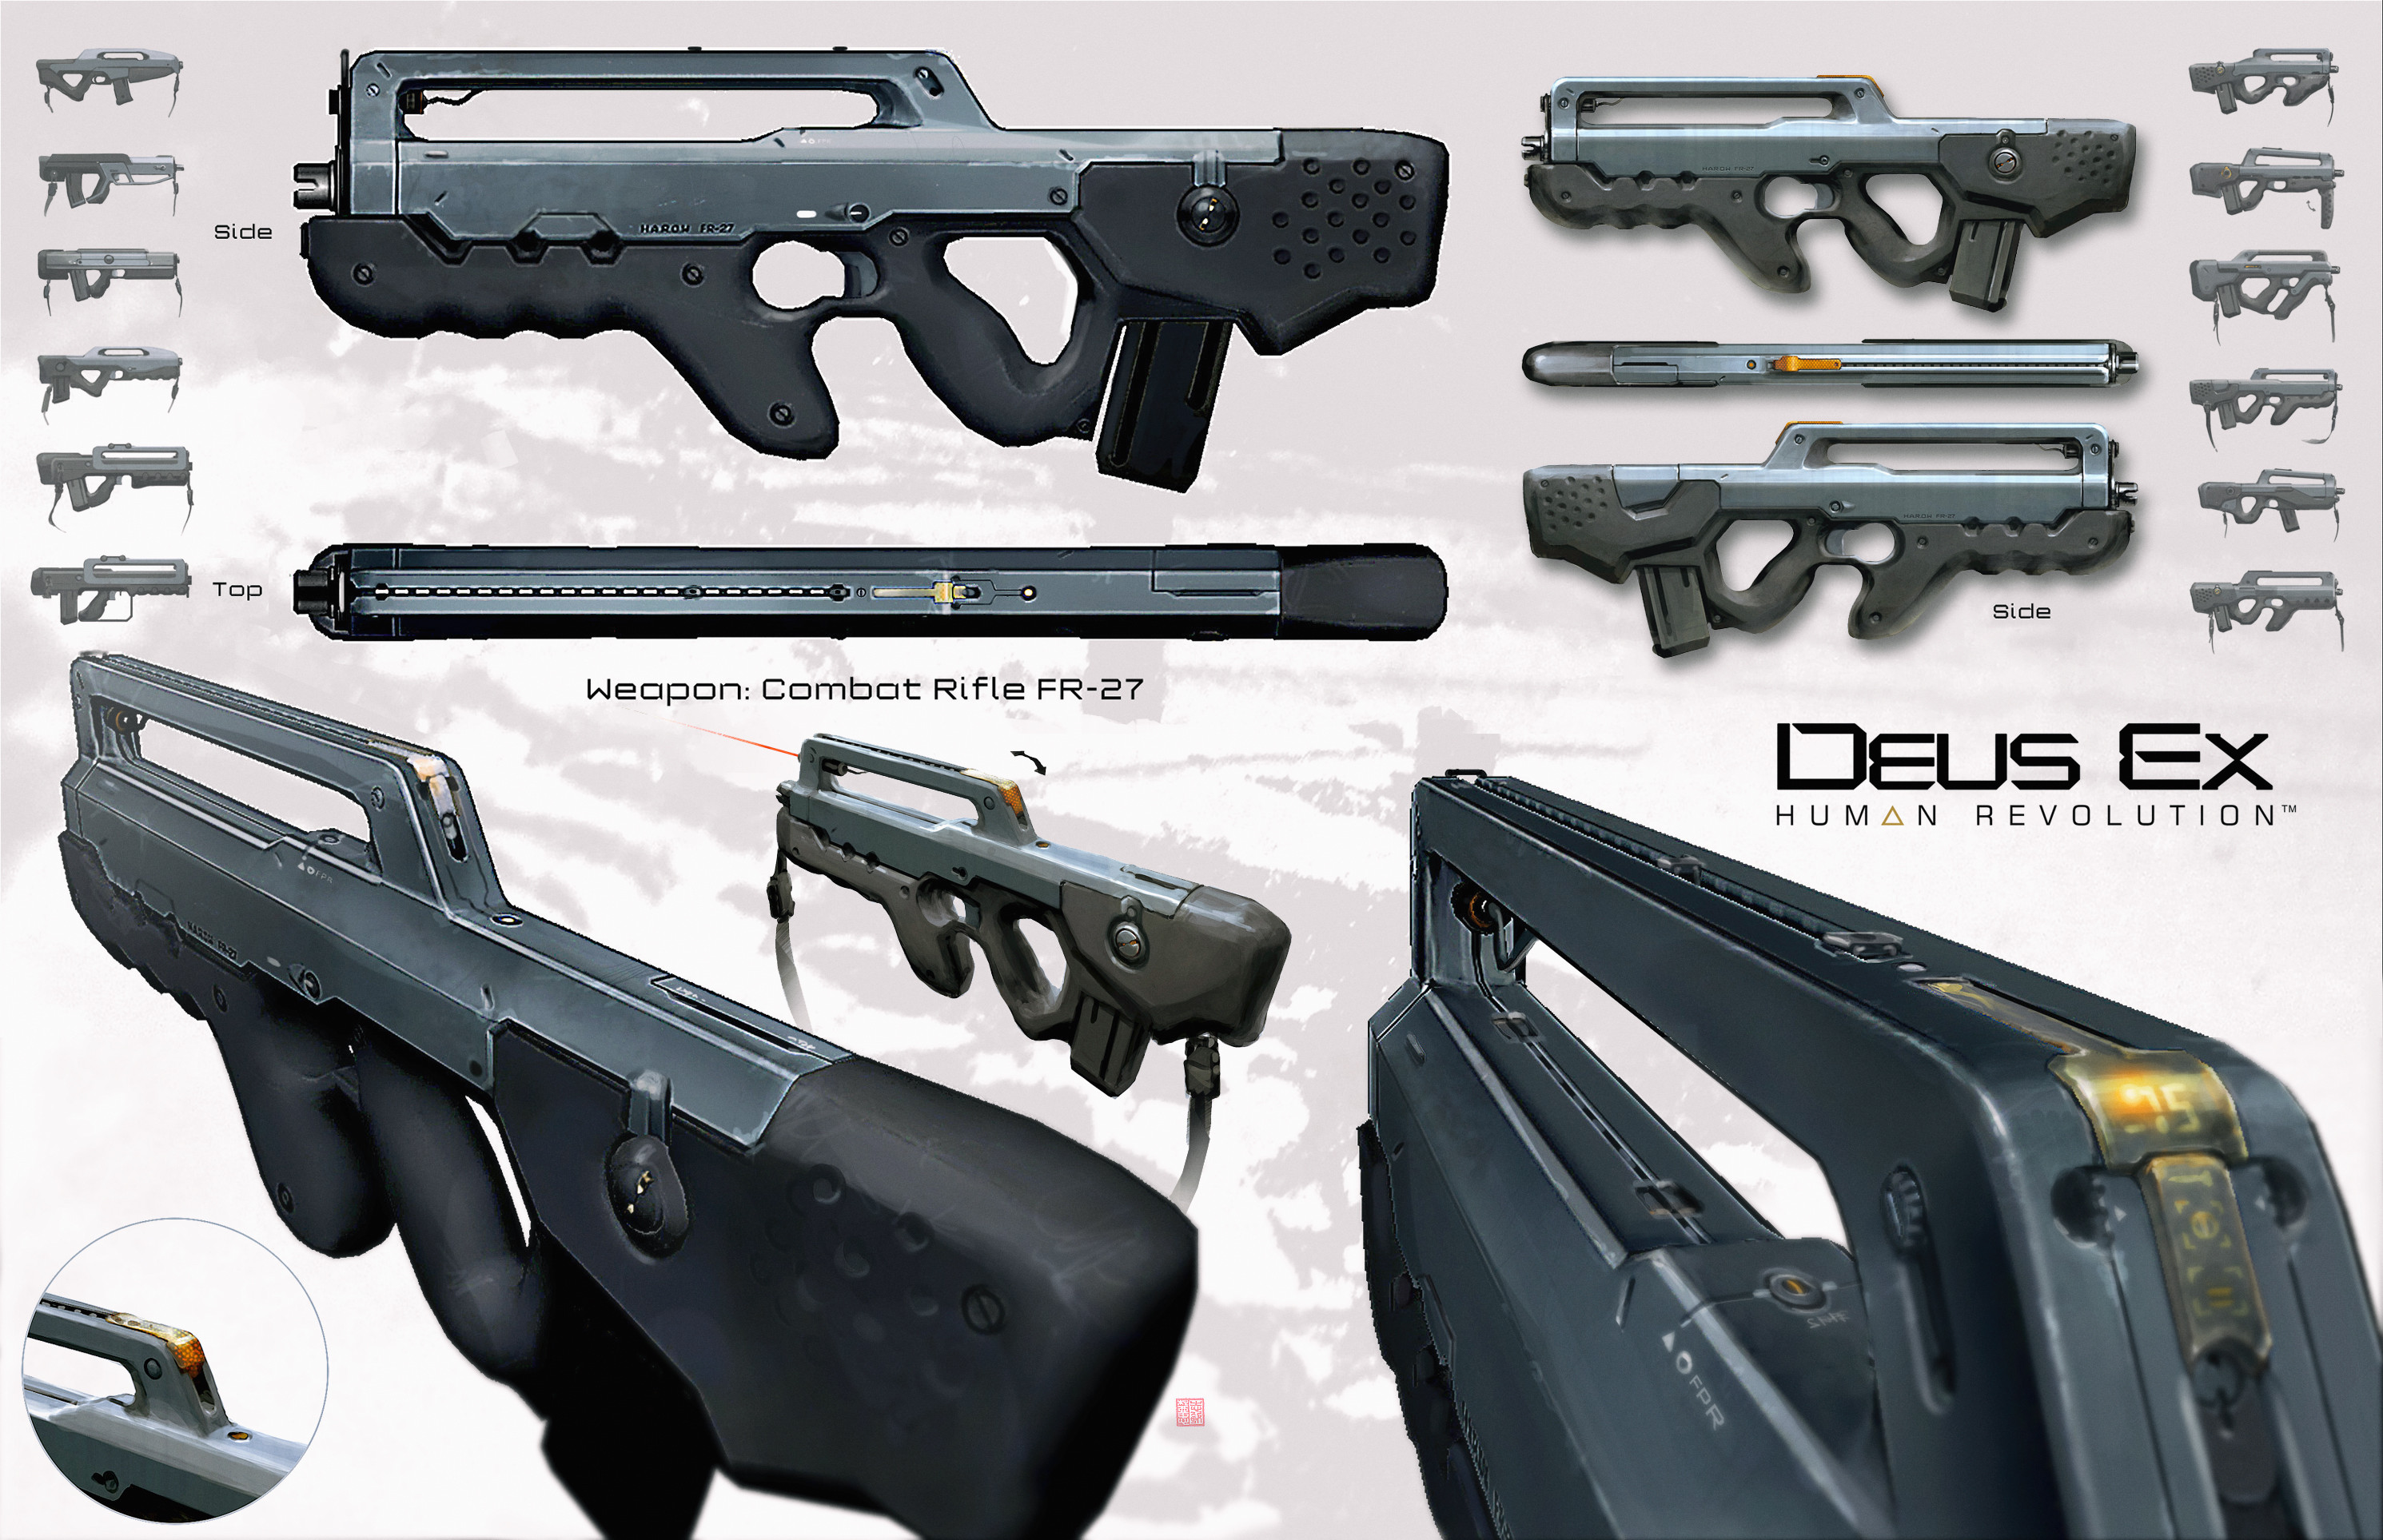 Early version of Adam Jensen's Riffle, which was used as a starting base, They increased the number of details and improved its overall final design though.